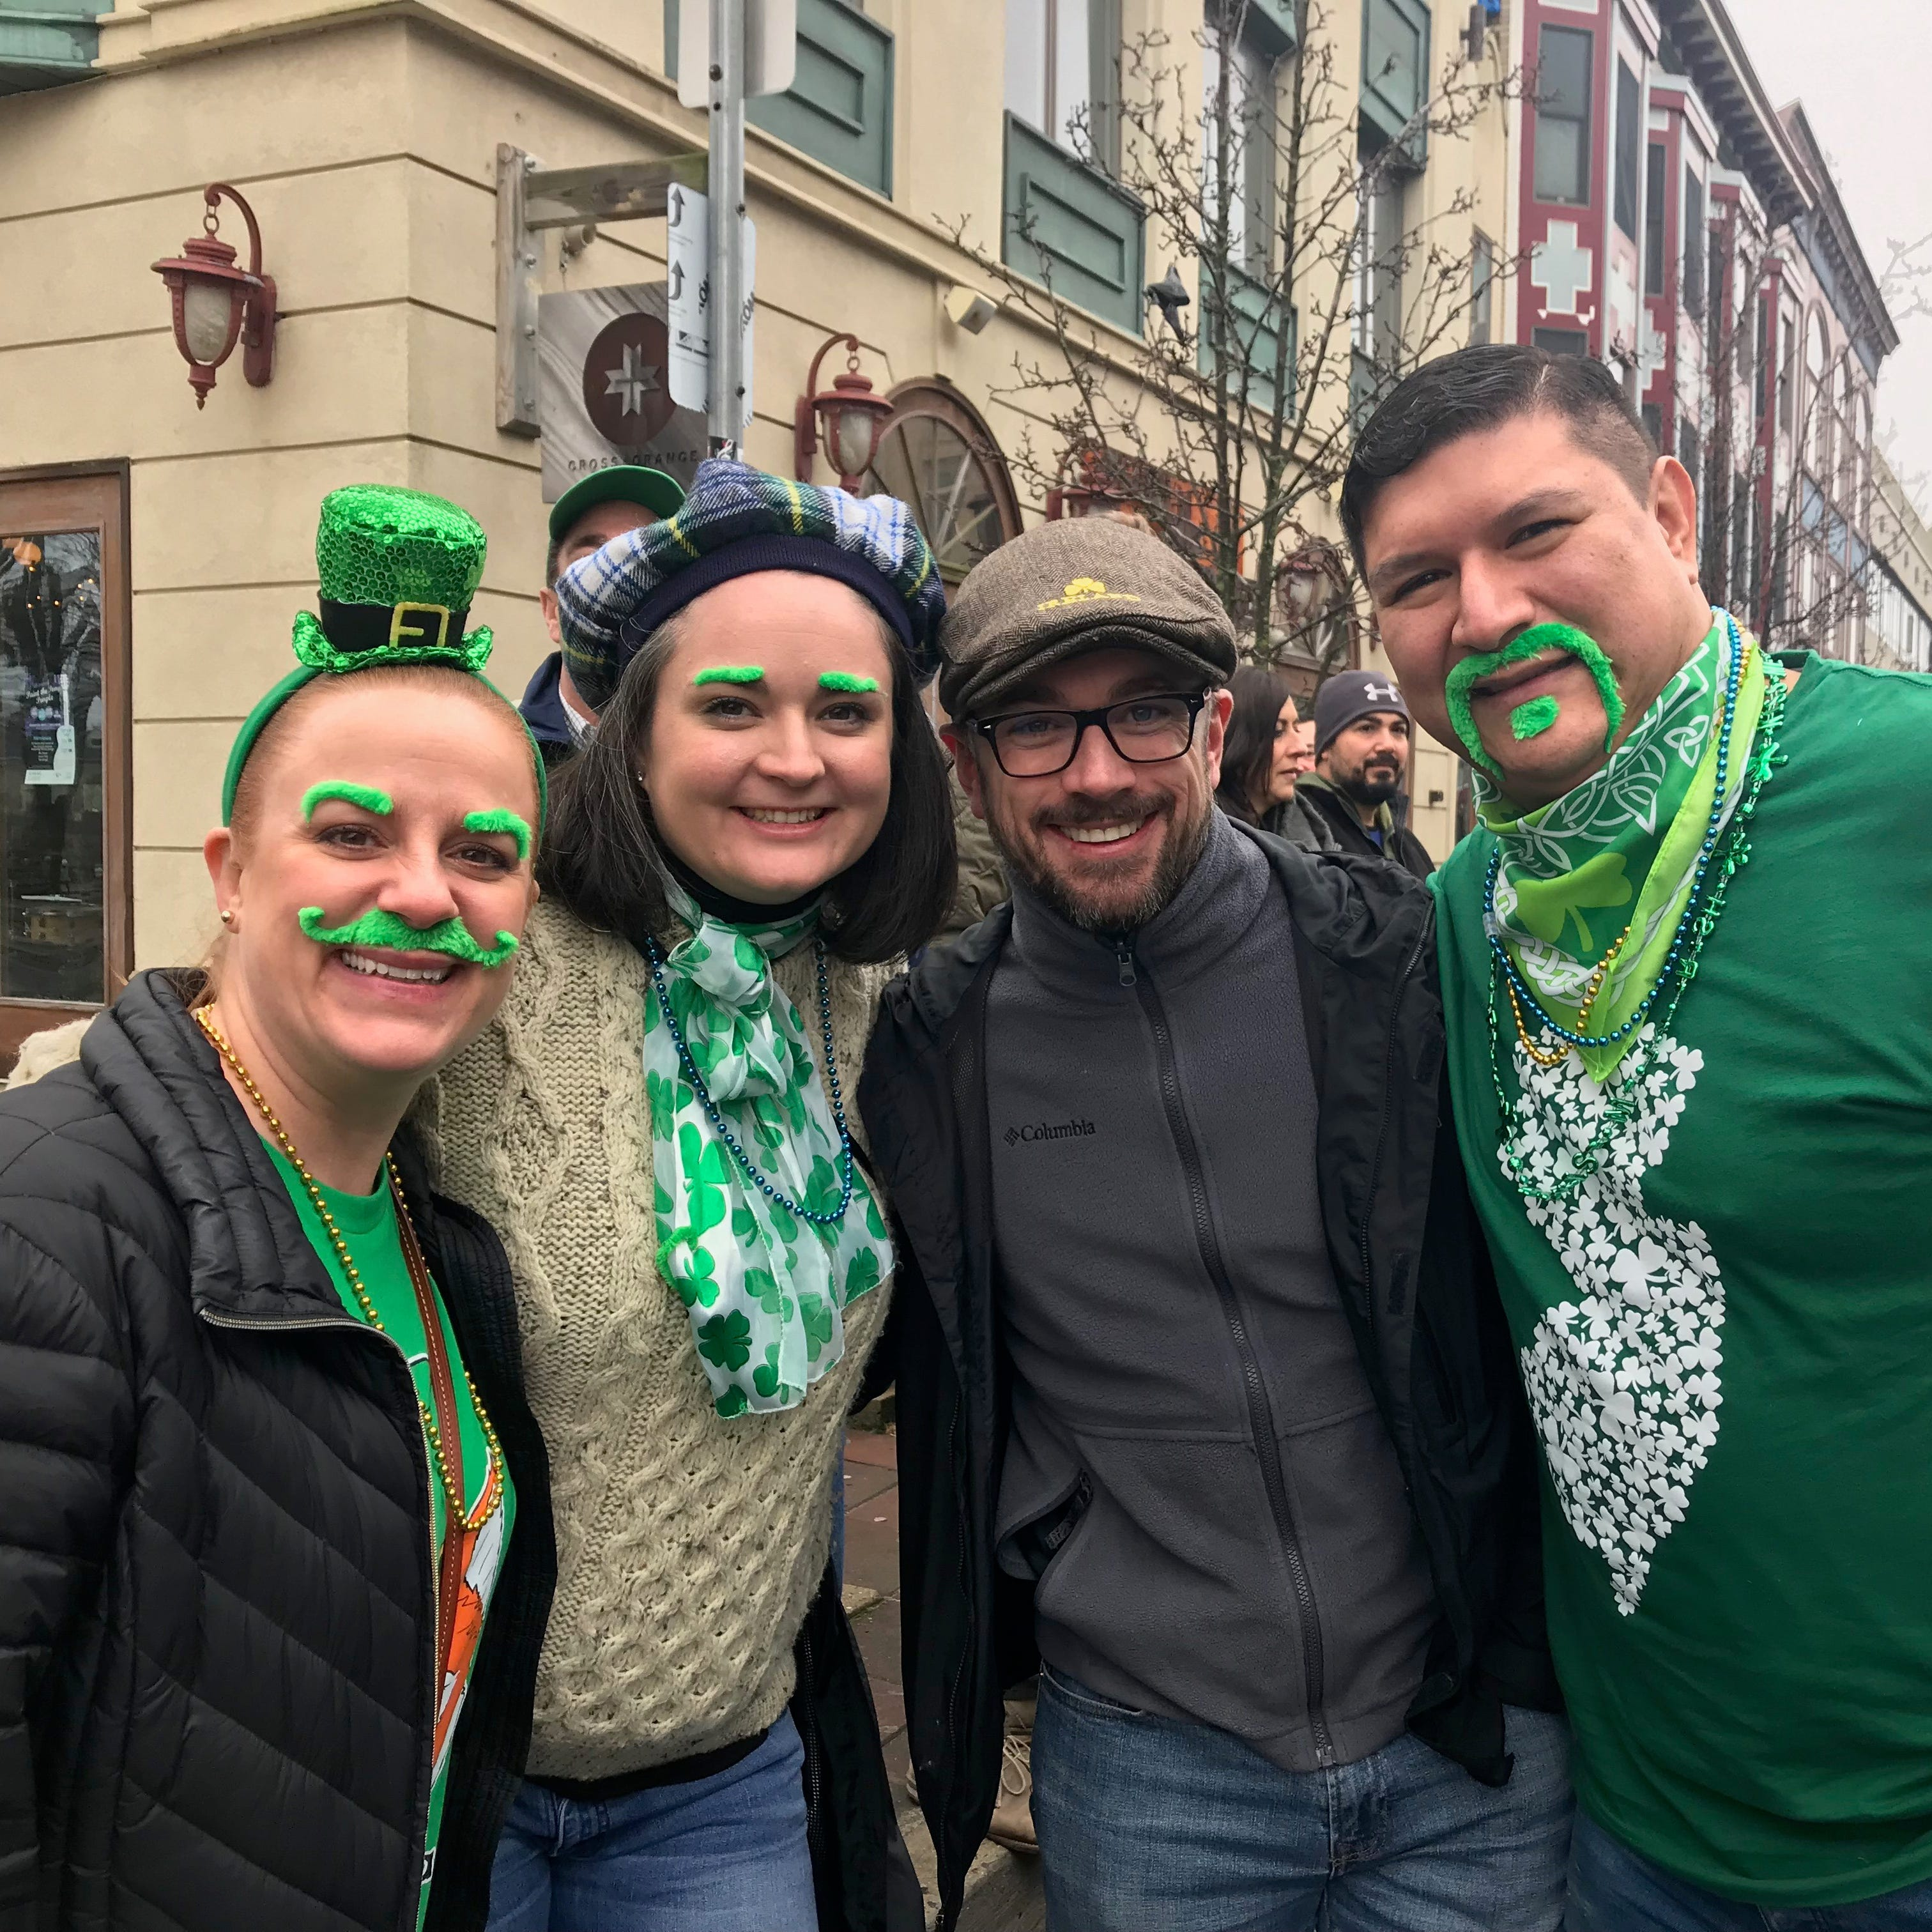 Asbury Park St. Patrick's Day Parade marches for sixth year